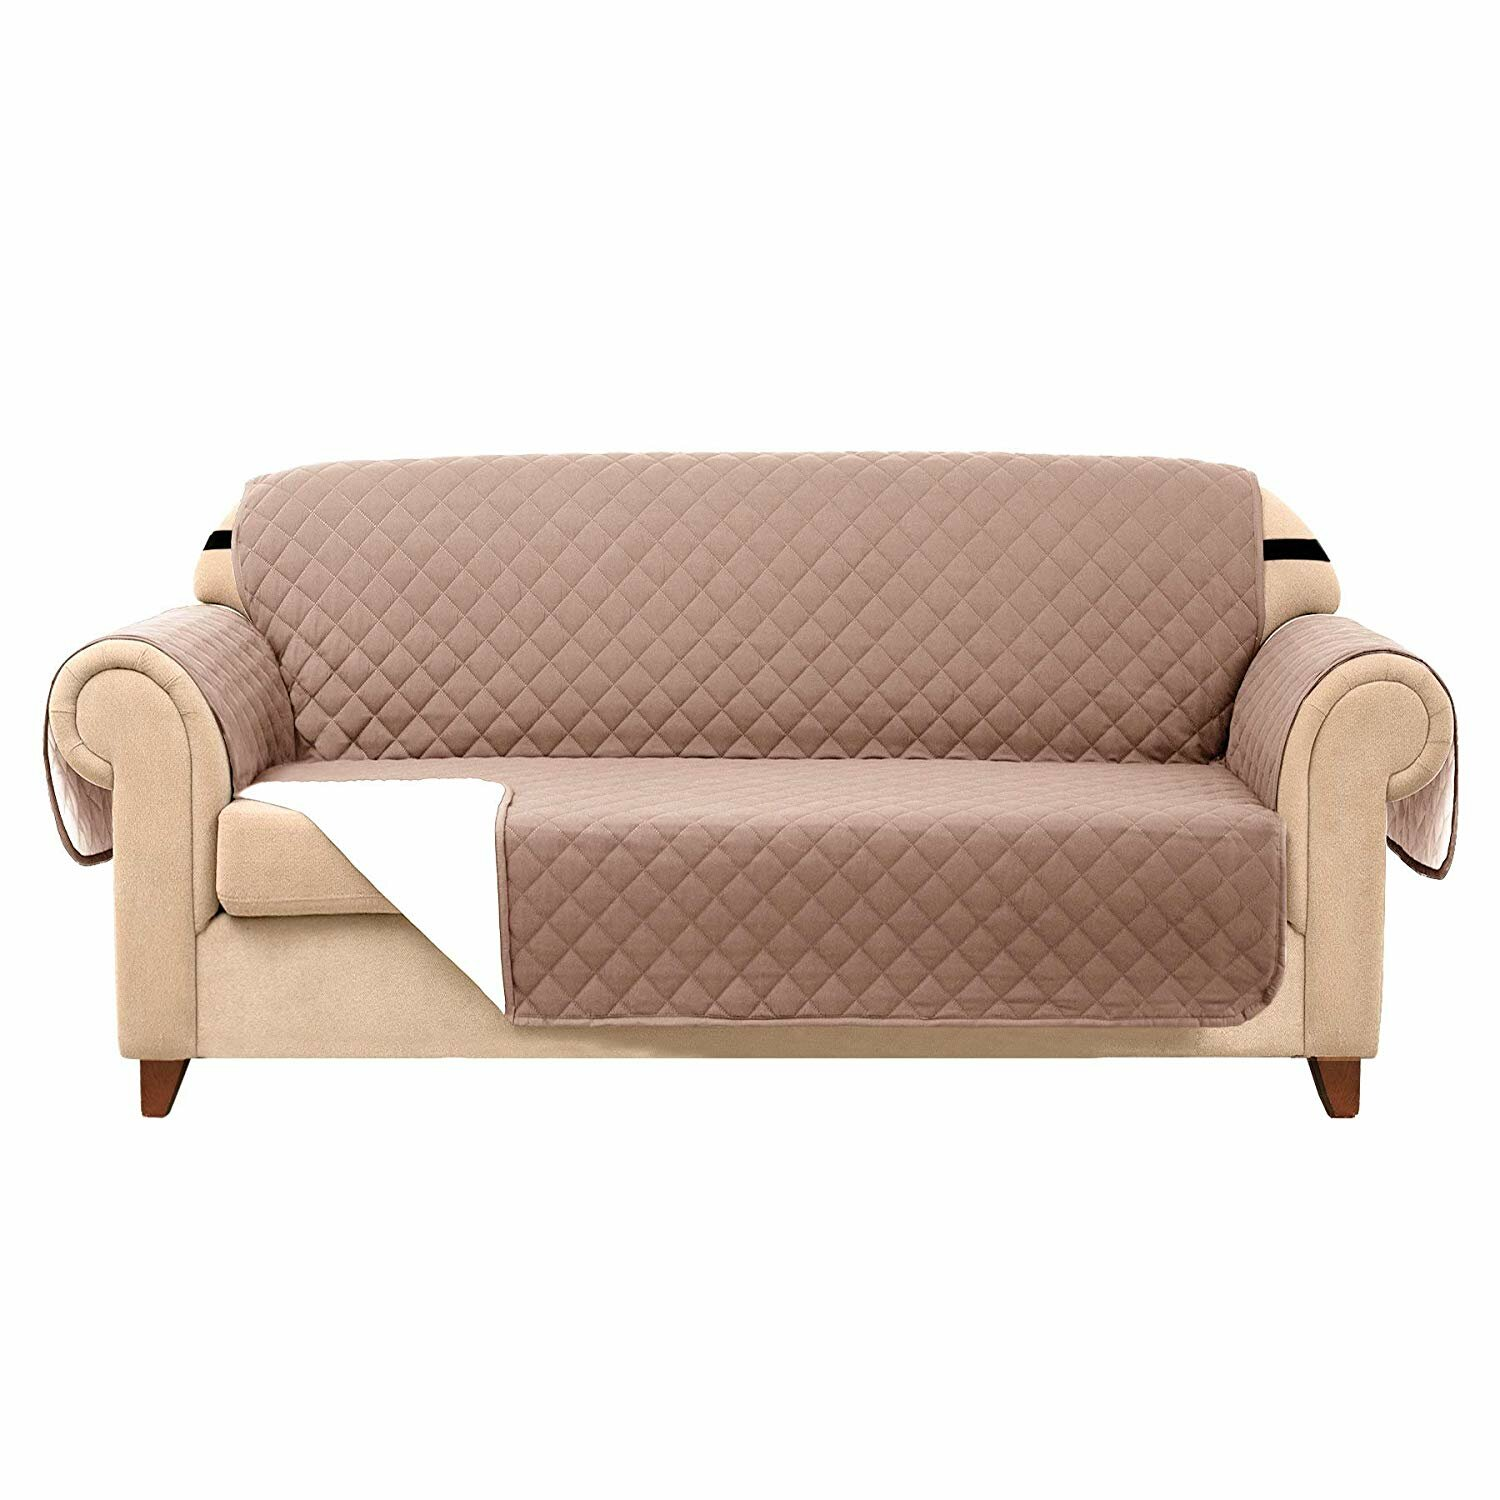 Enjoyable Quilted Reversible Box Cushion Sofa Slipcover Gmtry Best Dining Table And Chair Ideas Images Gmtryco